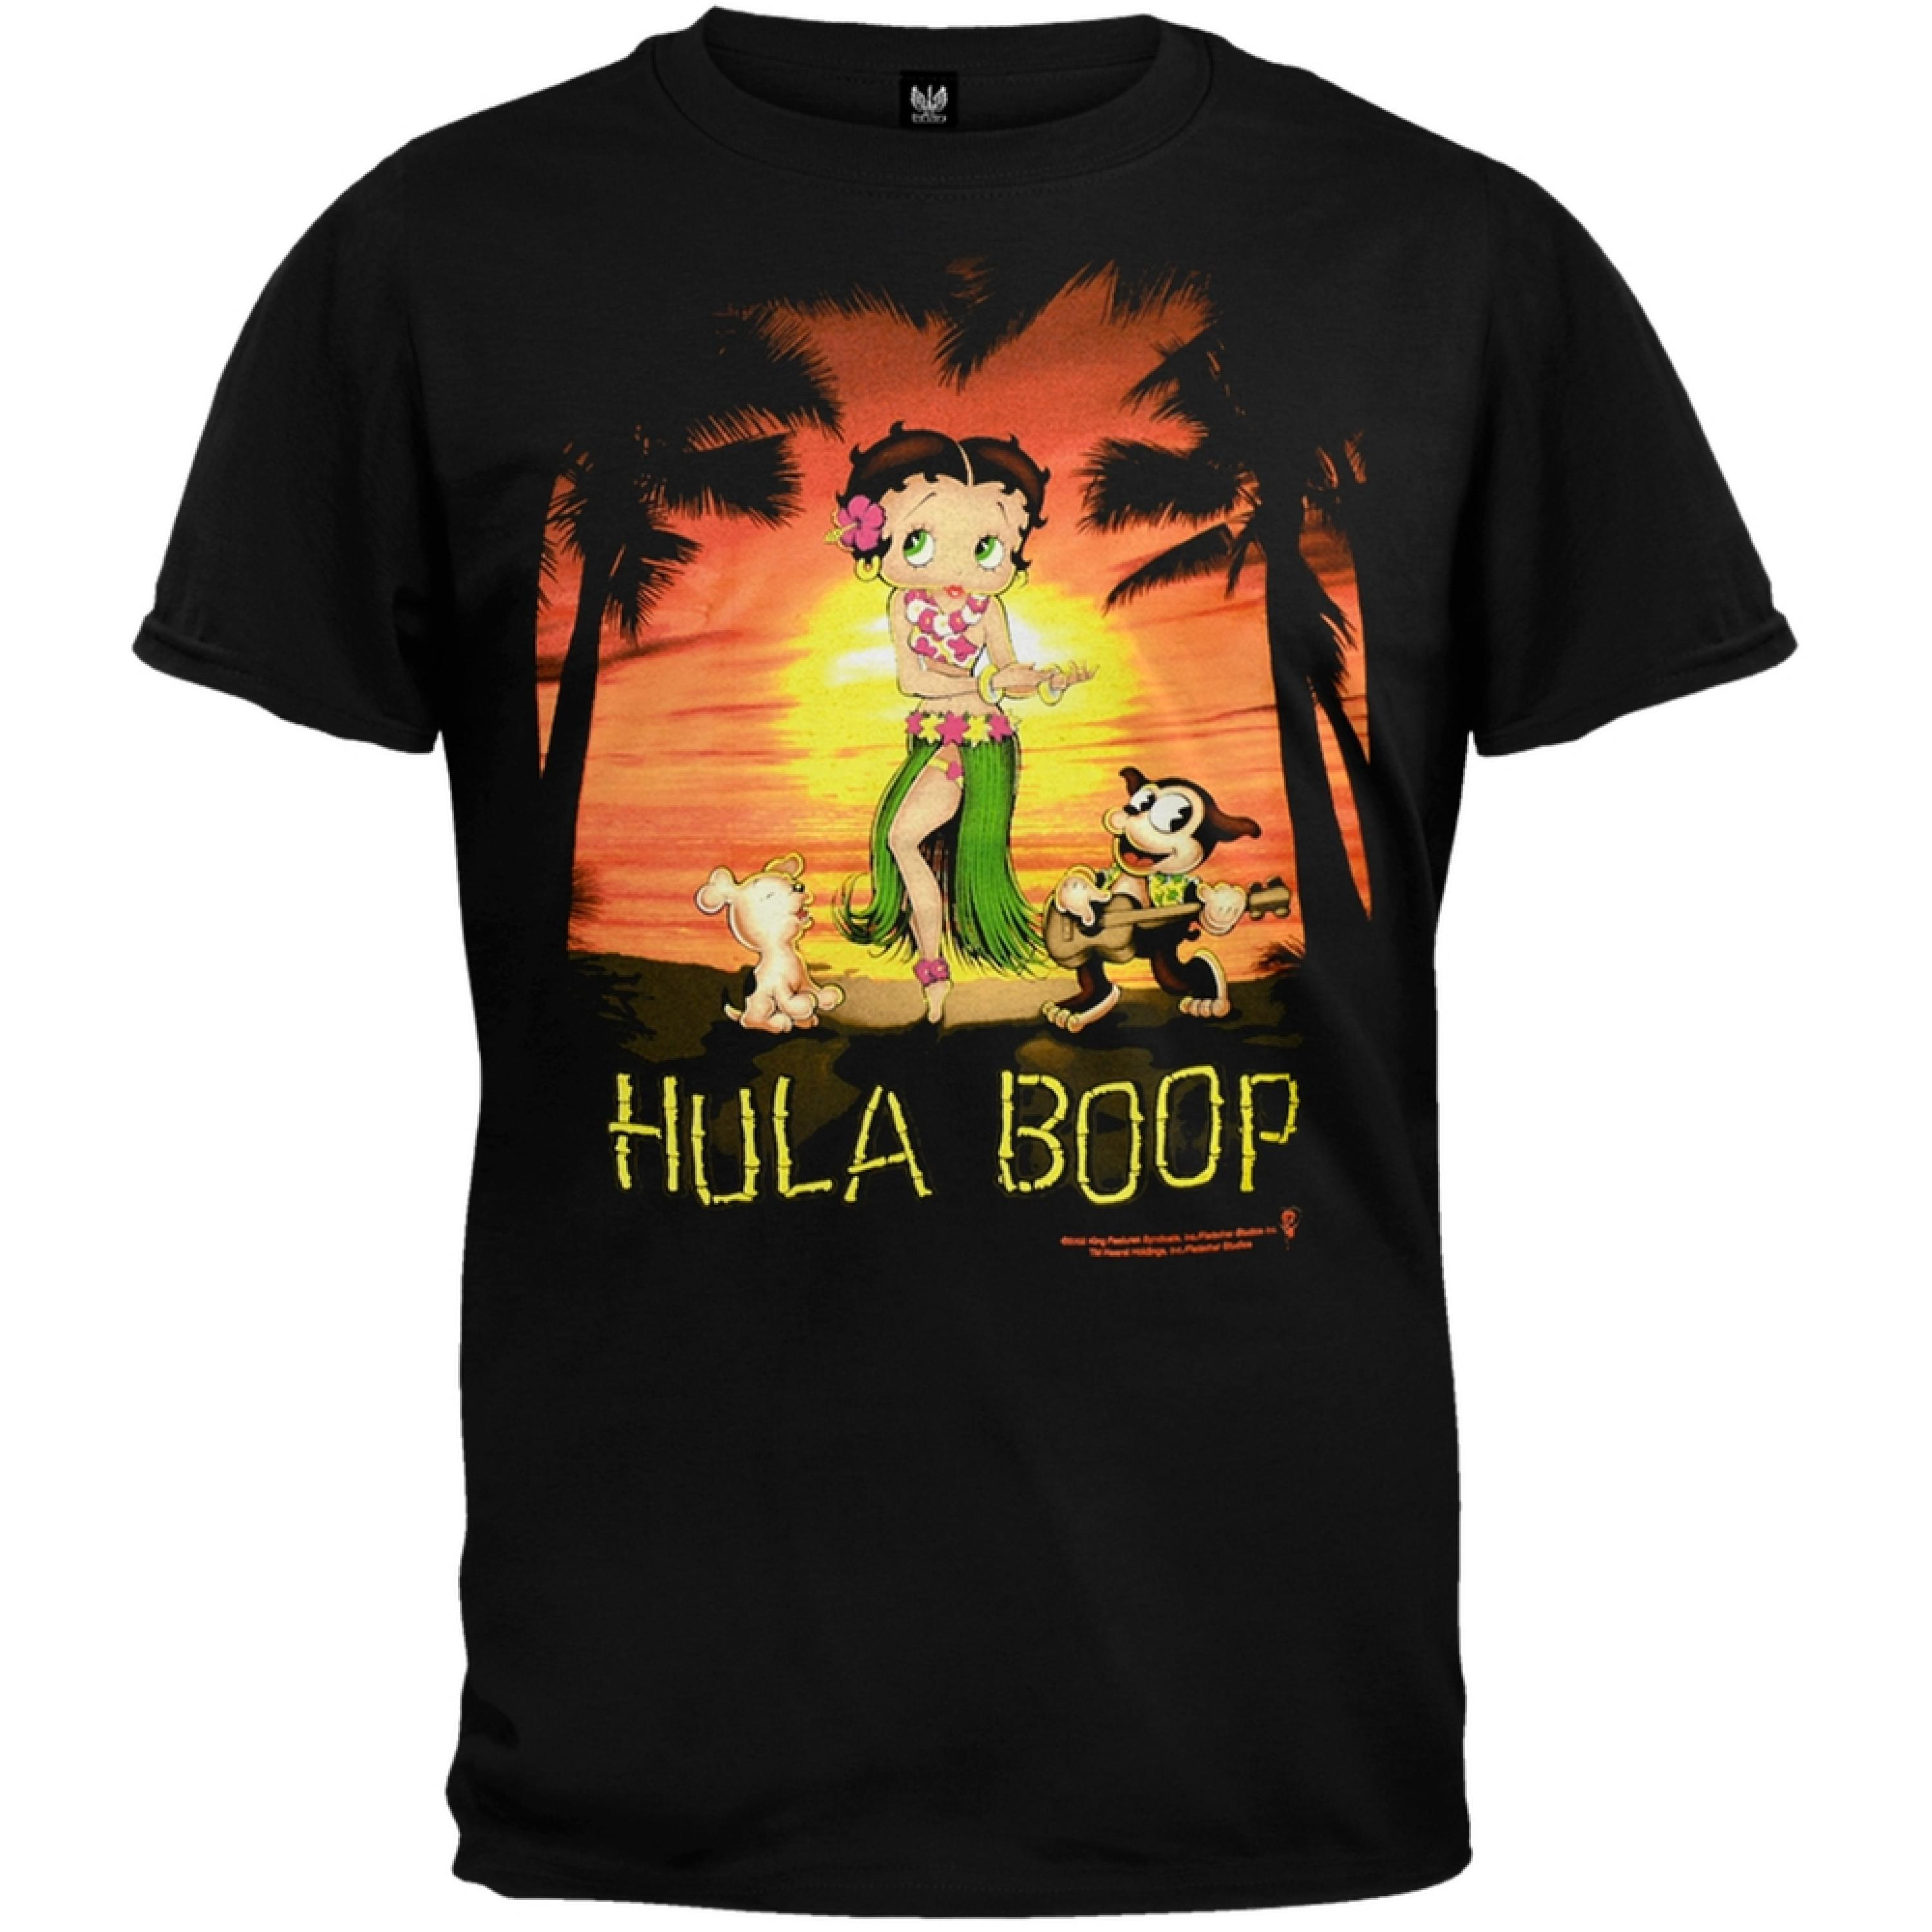 Betty Boop - Hula Boop Black T-Shirt